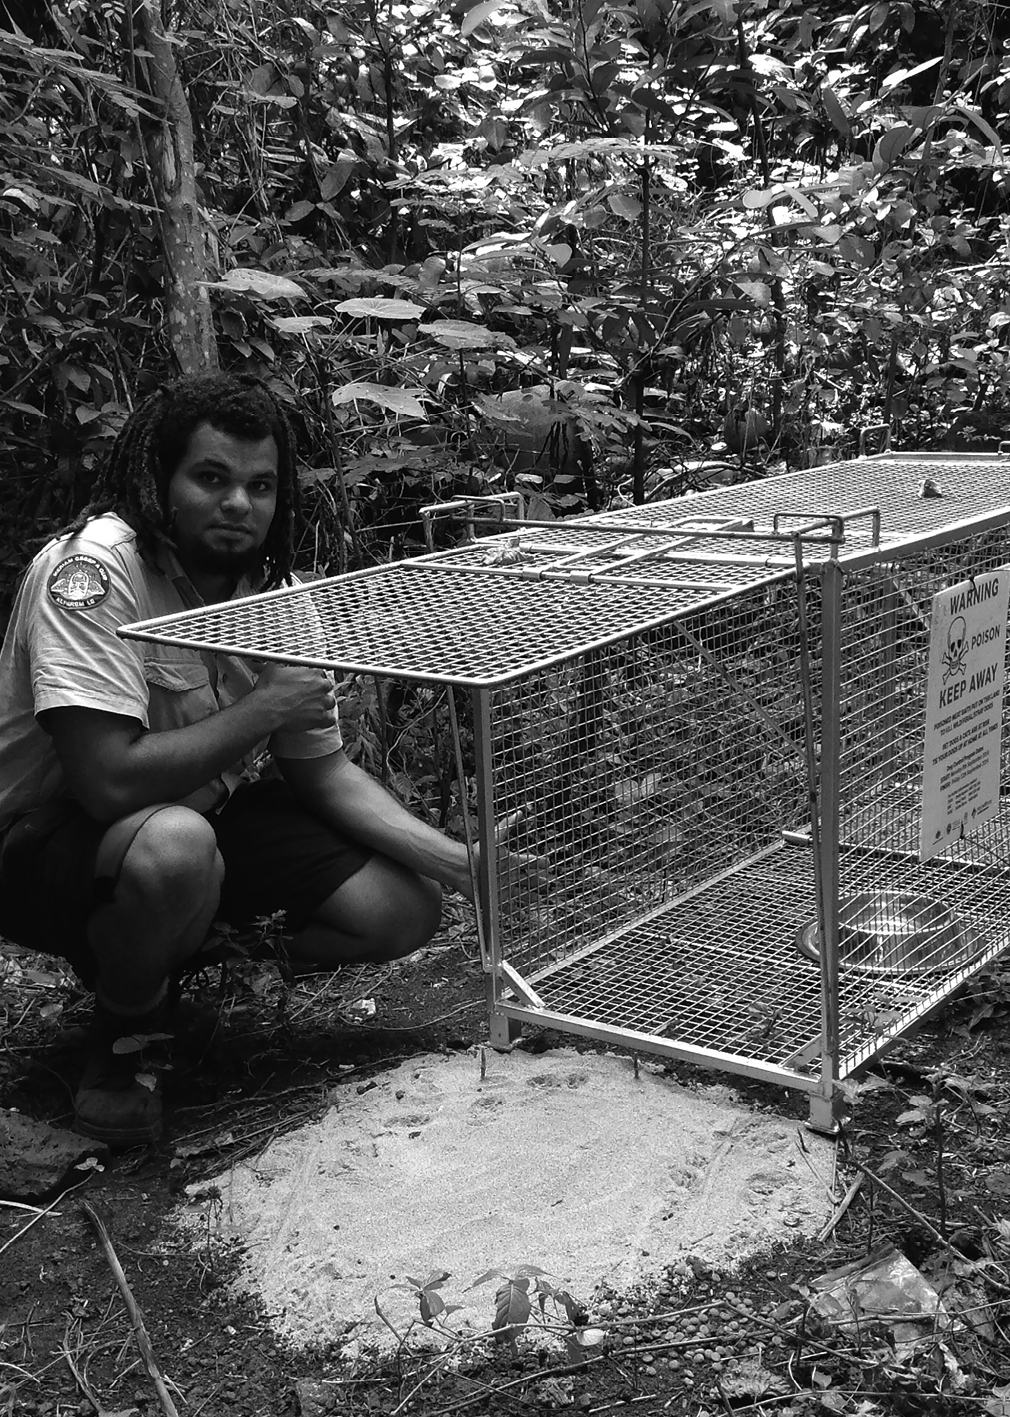 a photograph of Mer Ranger Aaron Bon inspecting a dog trap for turtle protection